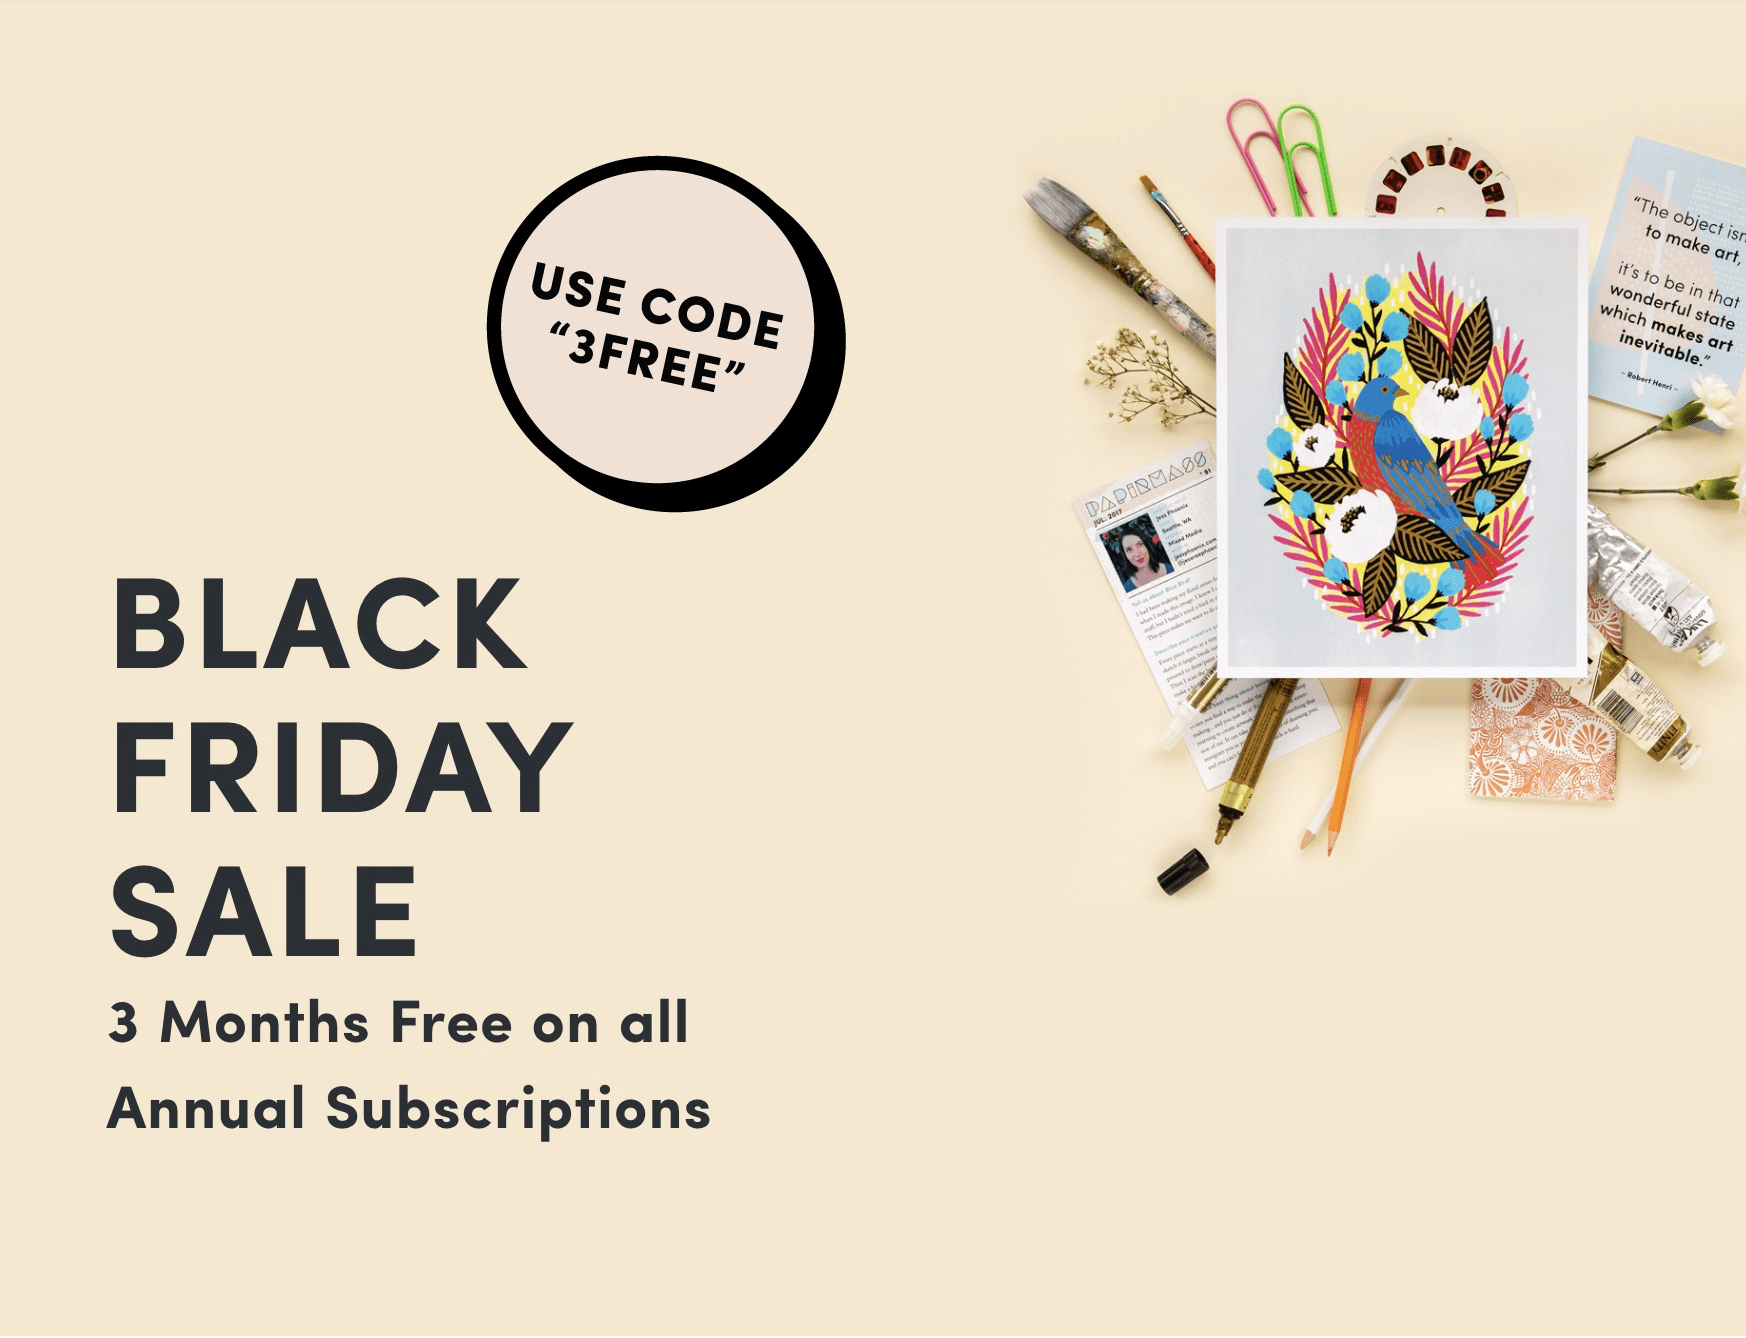 Papirmass Art Subscription Black Friday Deal: 3 Months Free on Annual Subscriptions!